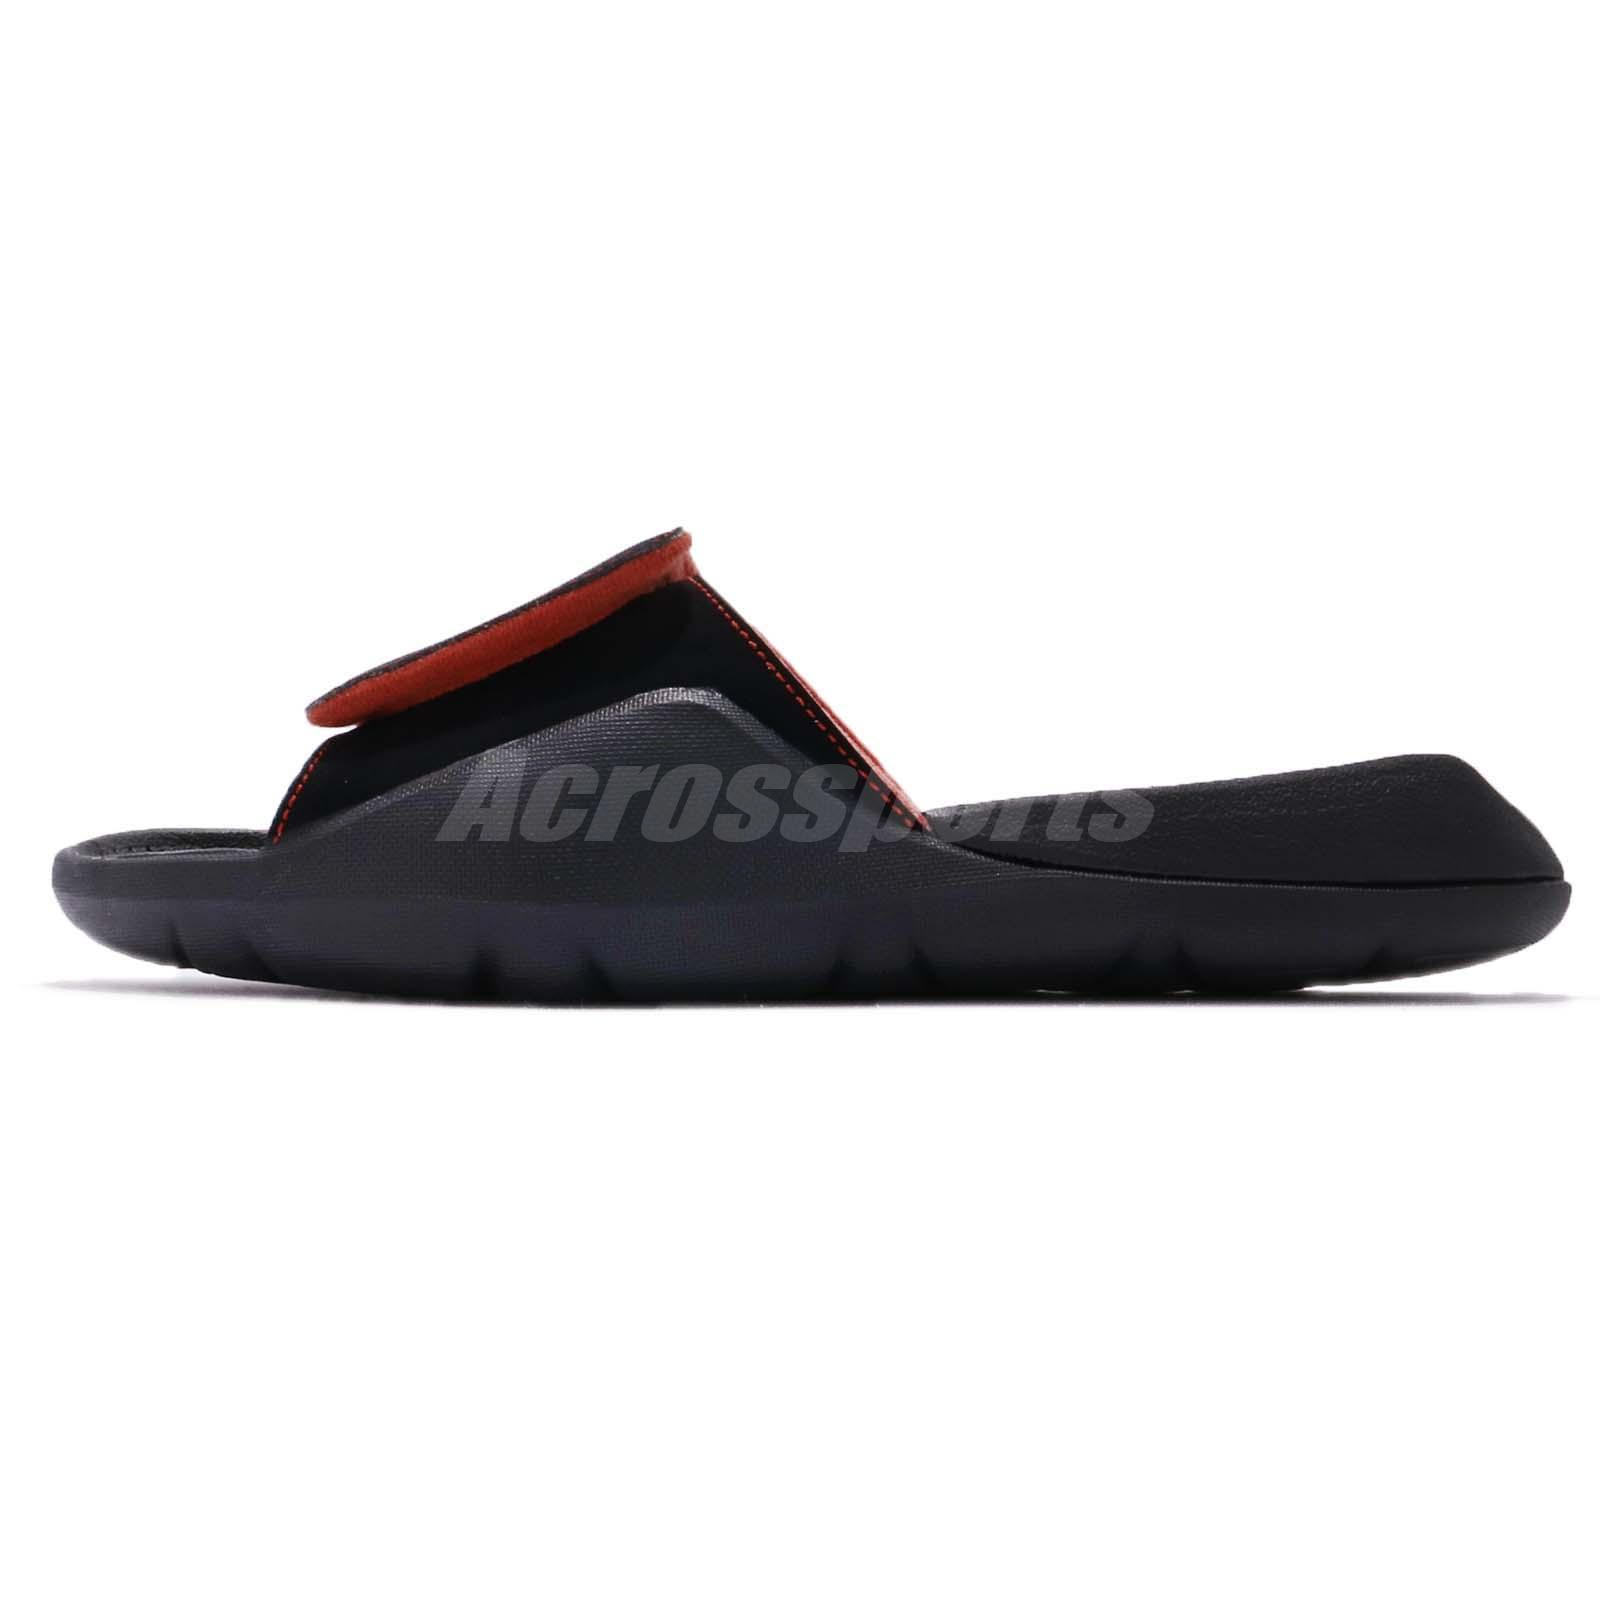 9e9f20ad9215c2 Nike Jordan Hydro 7 VII 14 XIV Black Red Men Sports Sandal Slides ...